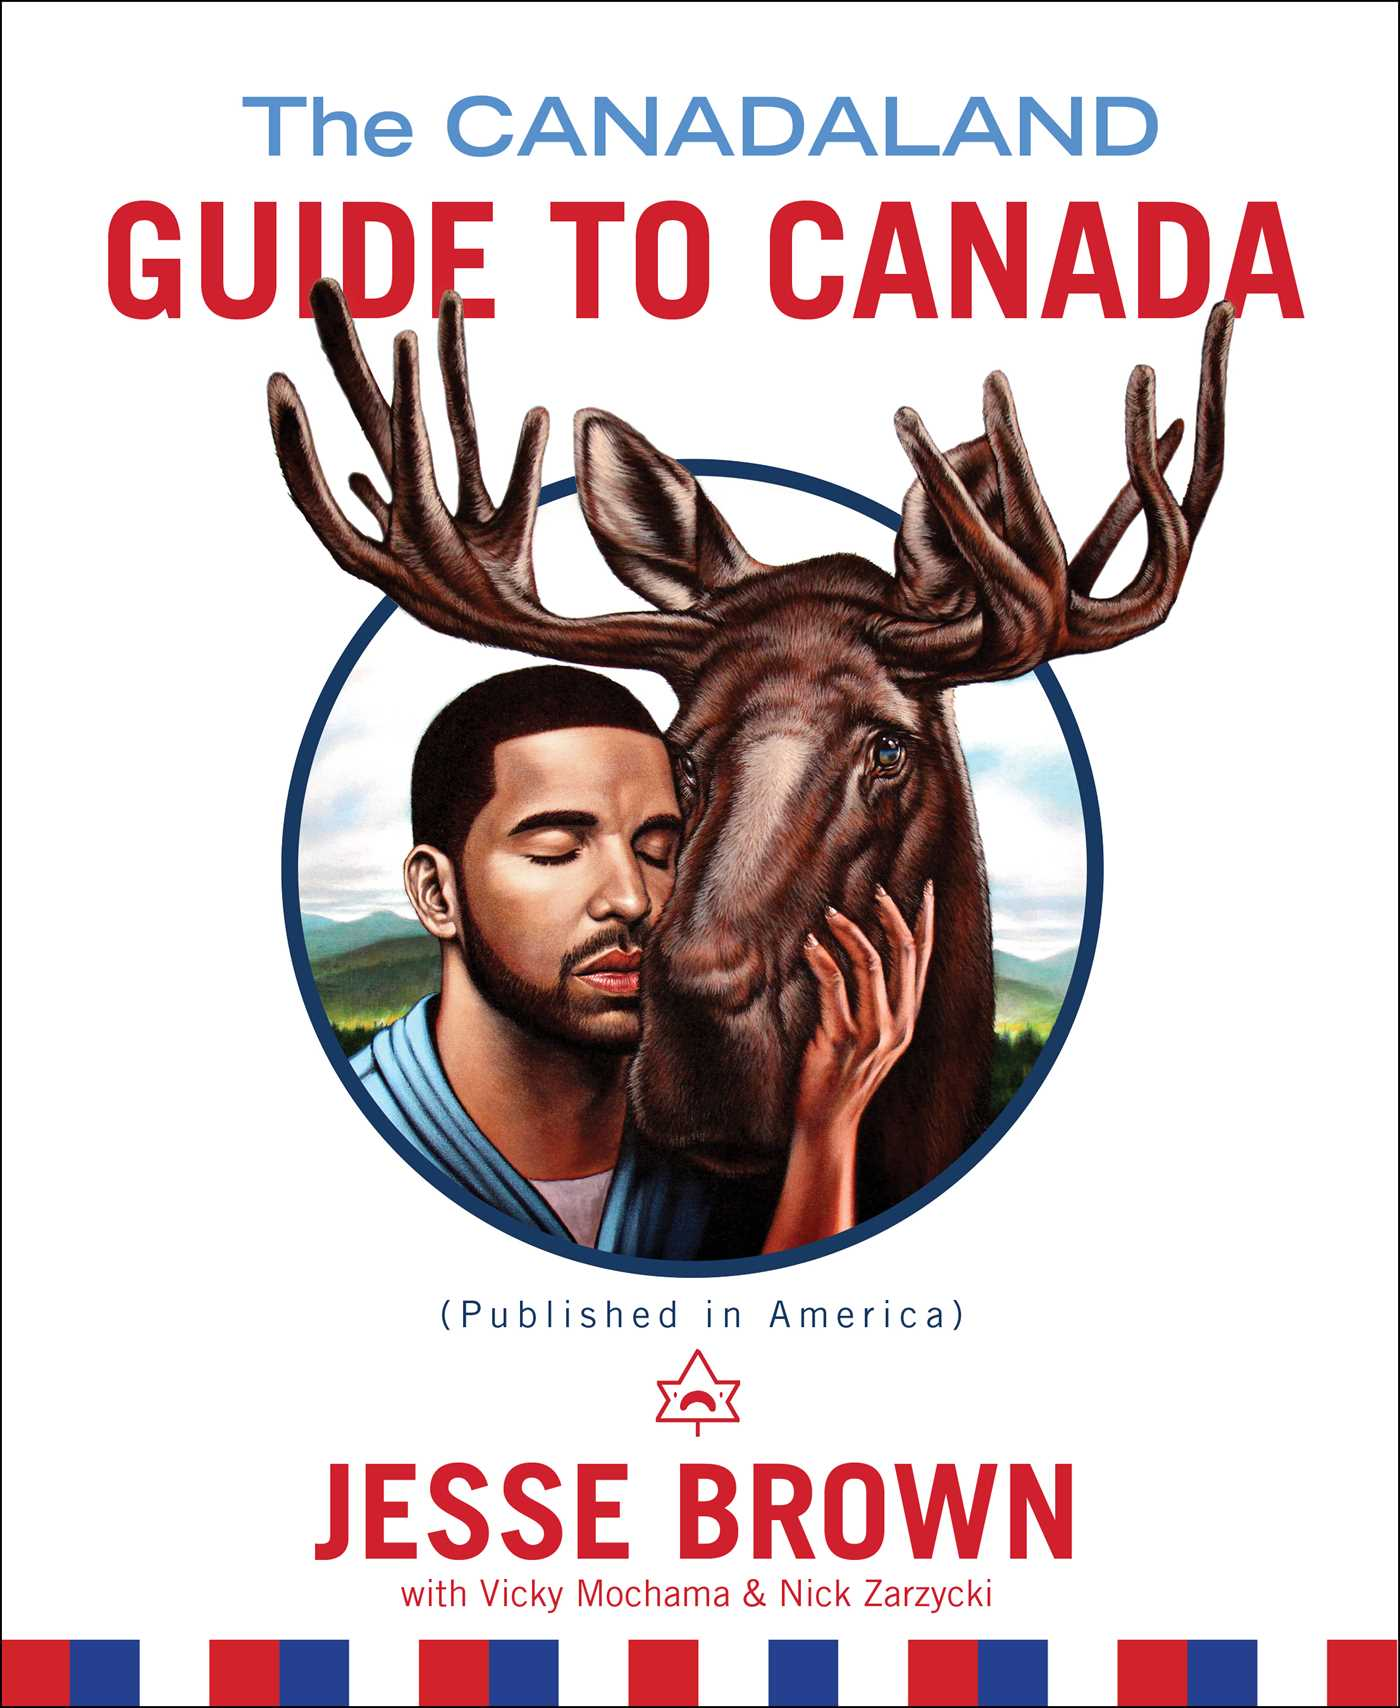 Canadaland guide to canada 9781501150630 hr